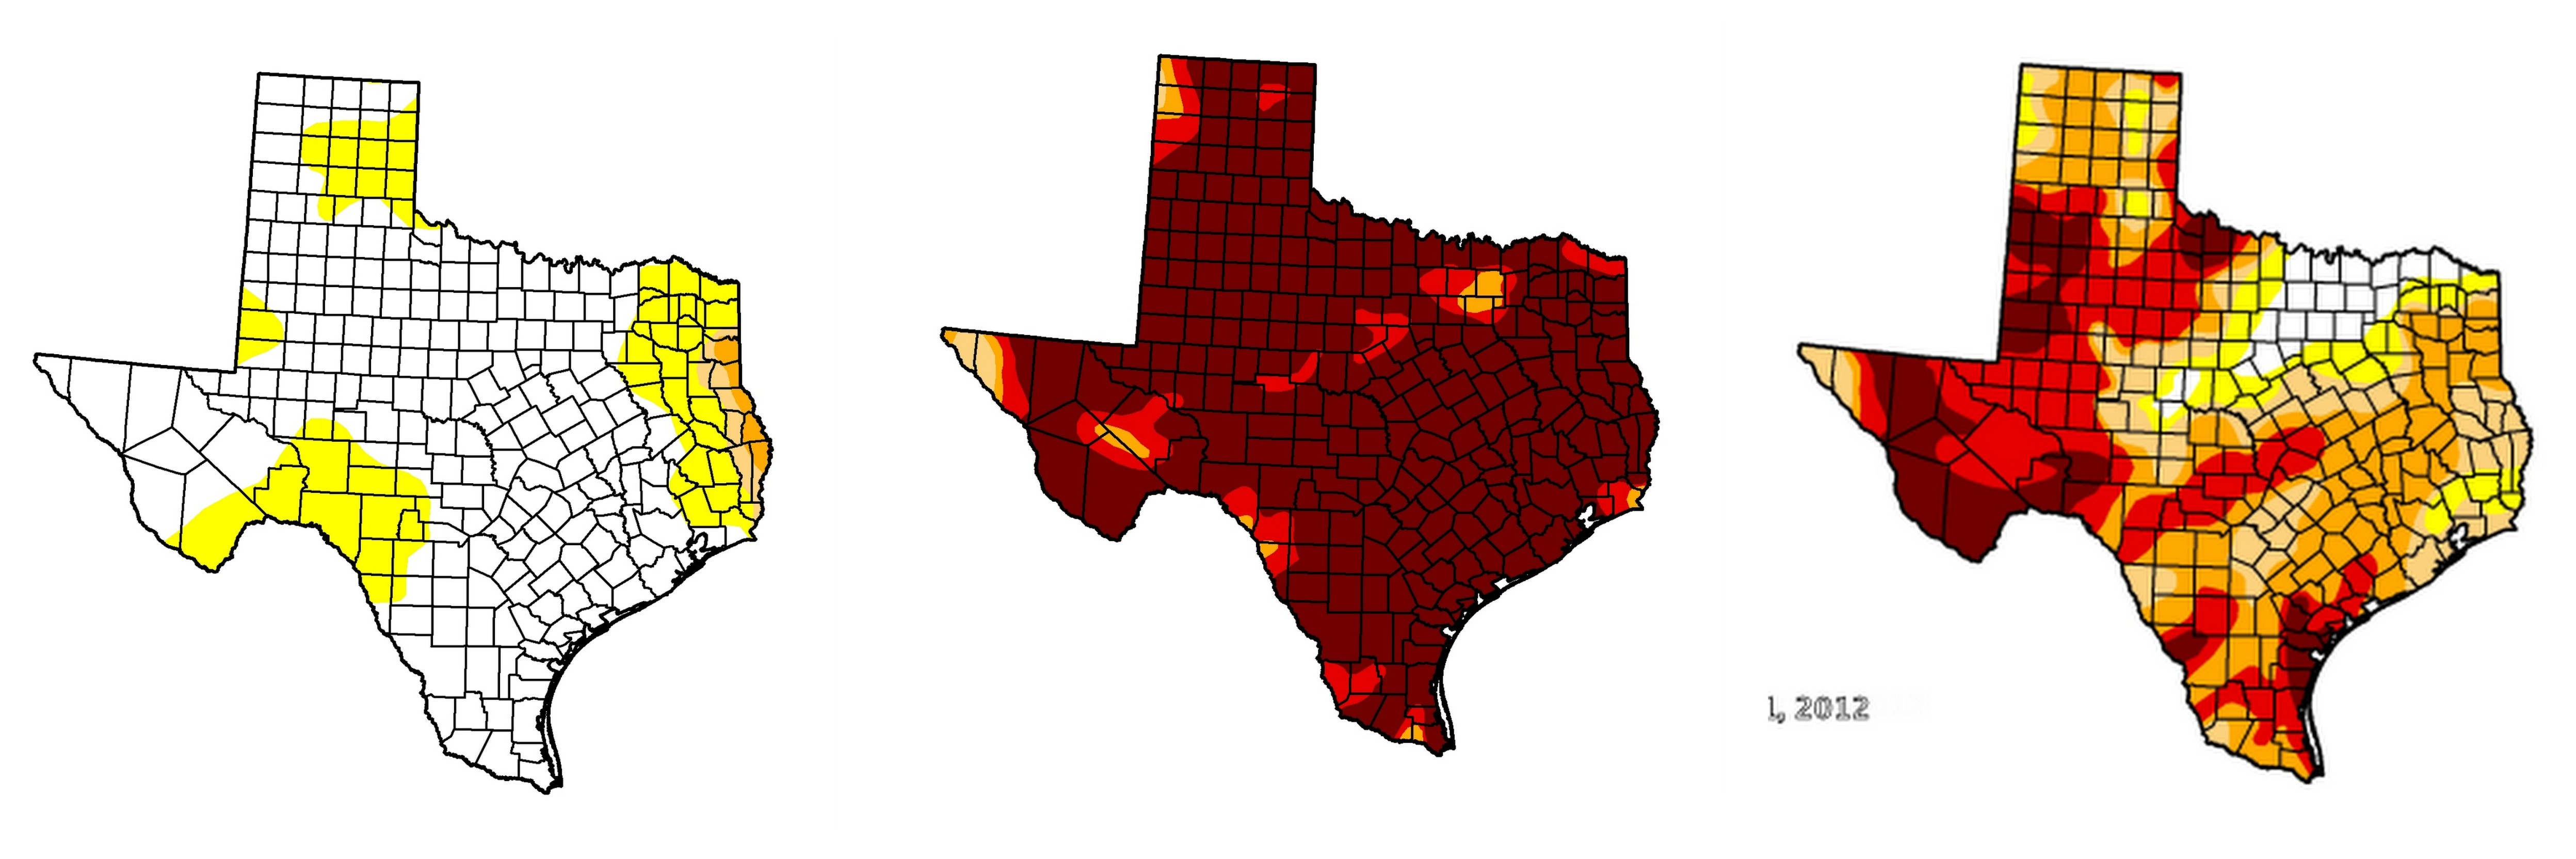 Texas Drought Map What Are the Different Levels of Drought? | StateImpact Texas Texas Drought Map